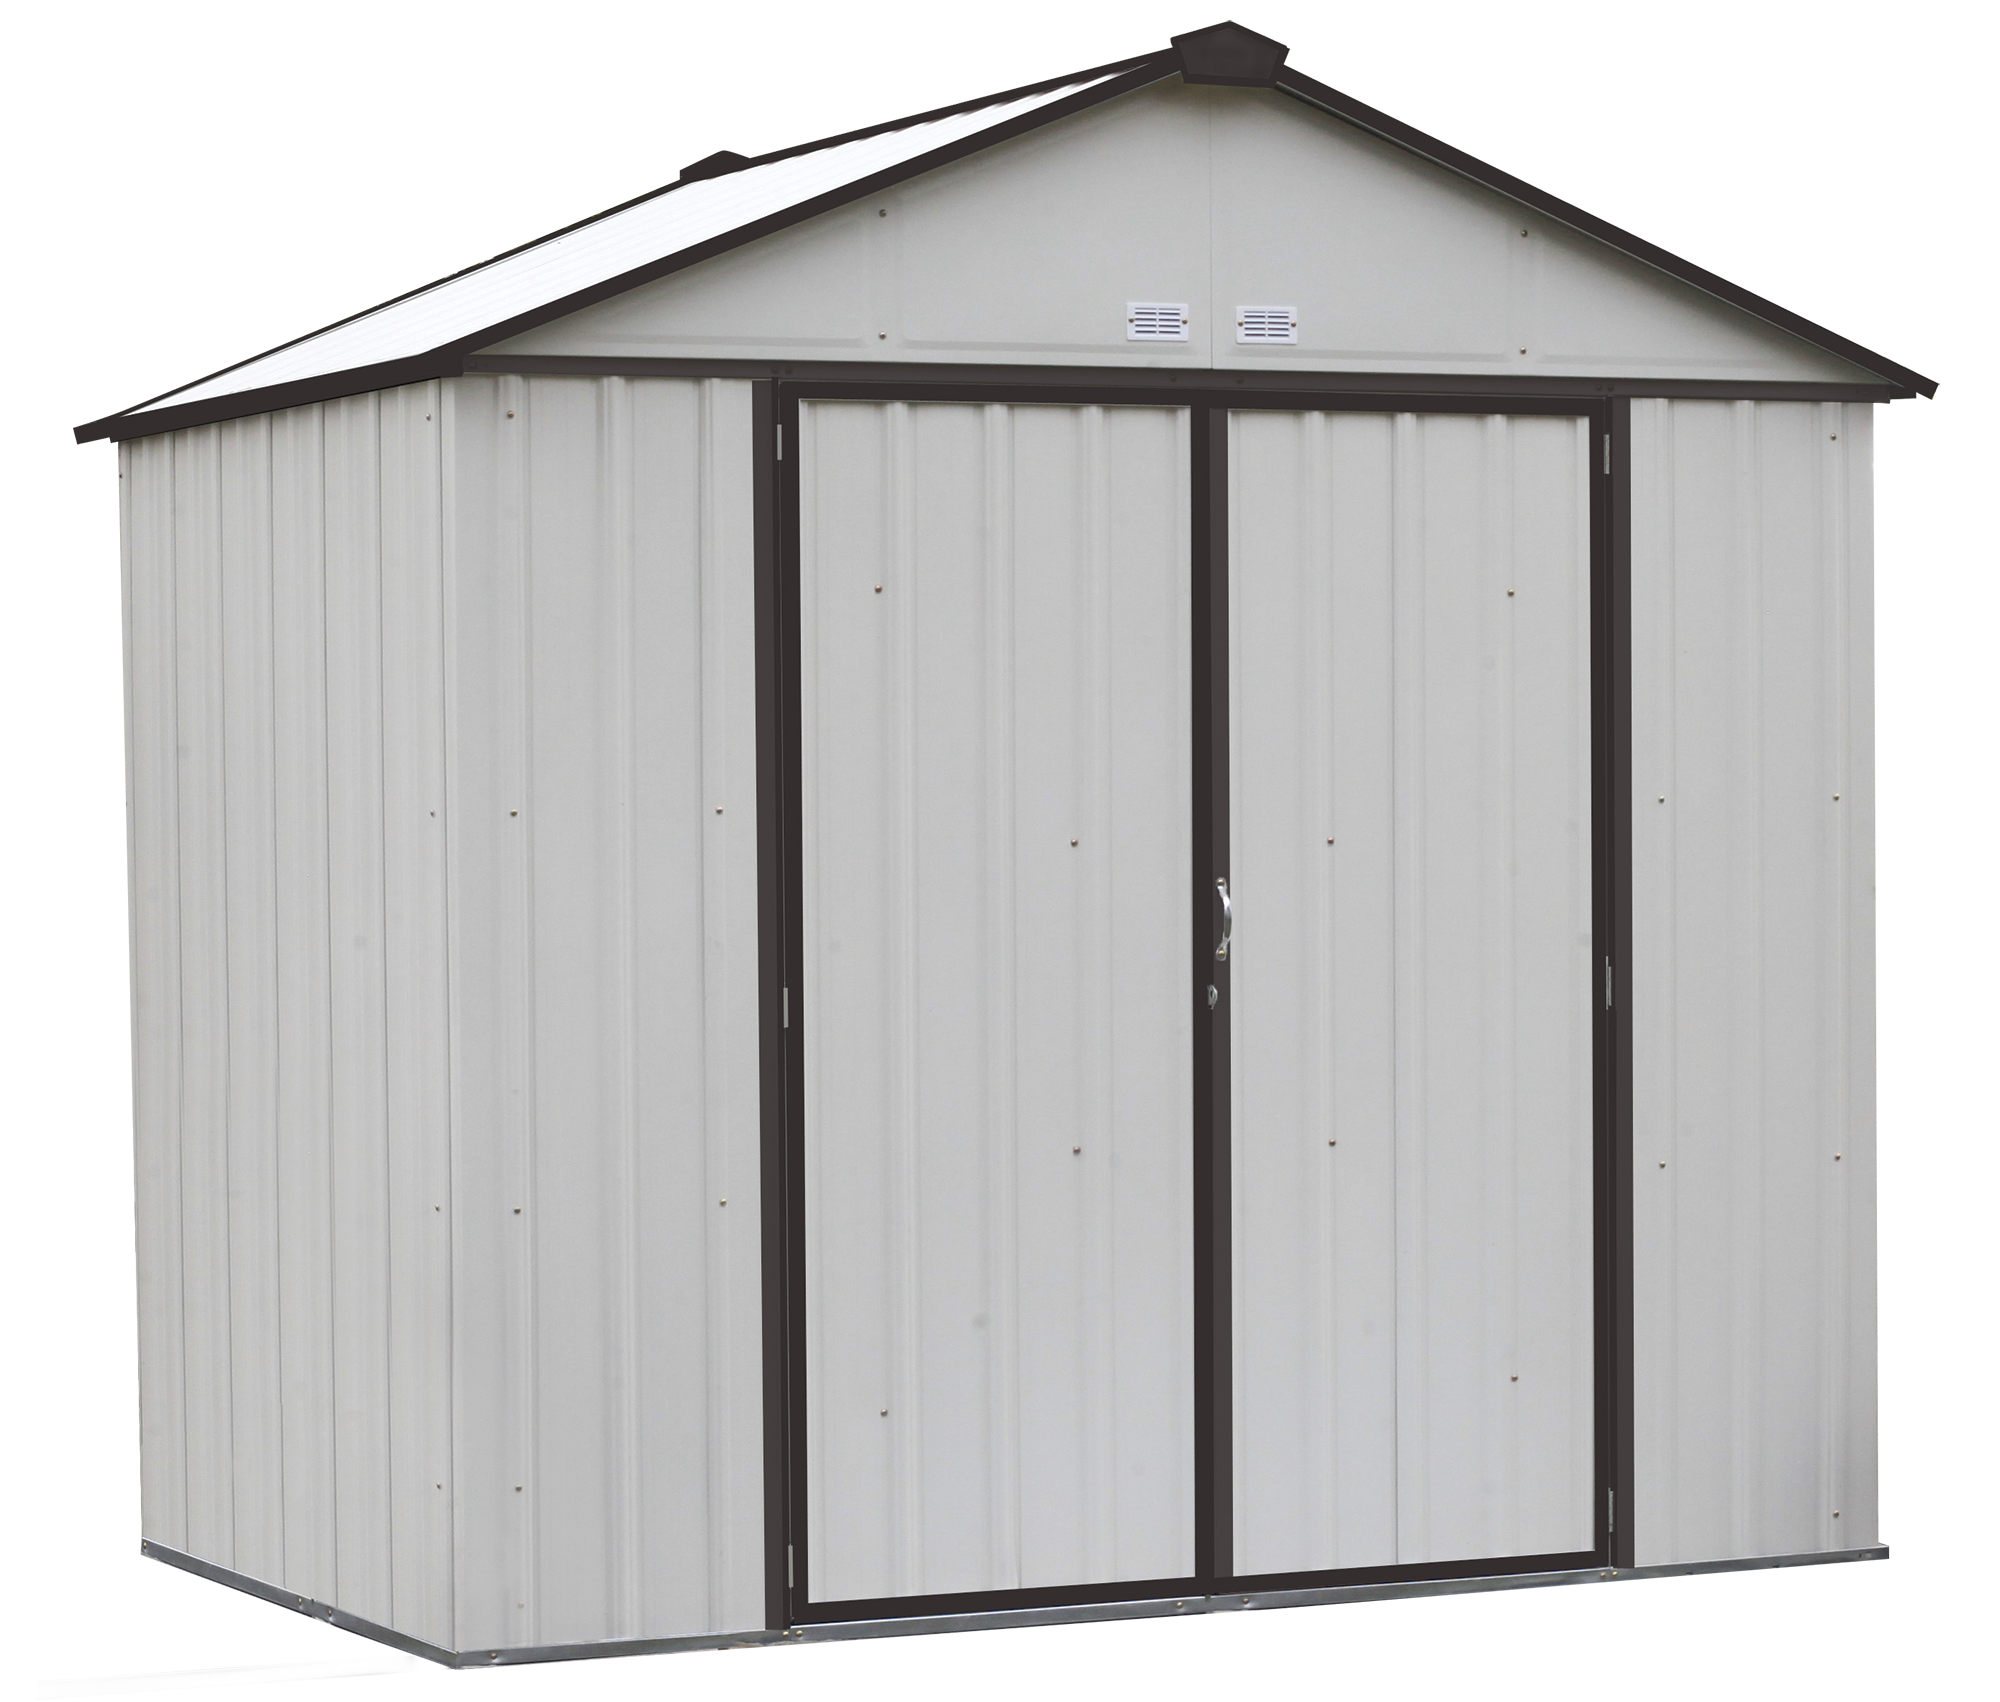 Steel Storage Shed 8 x 7 ft. Galvanized High Gable Cream/Charcoal Trim